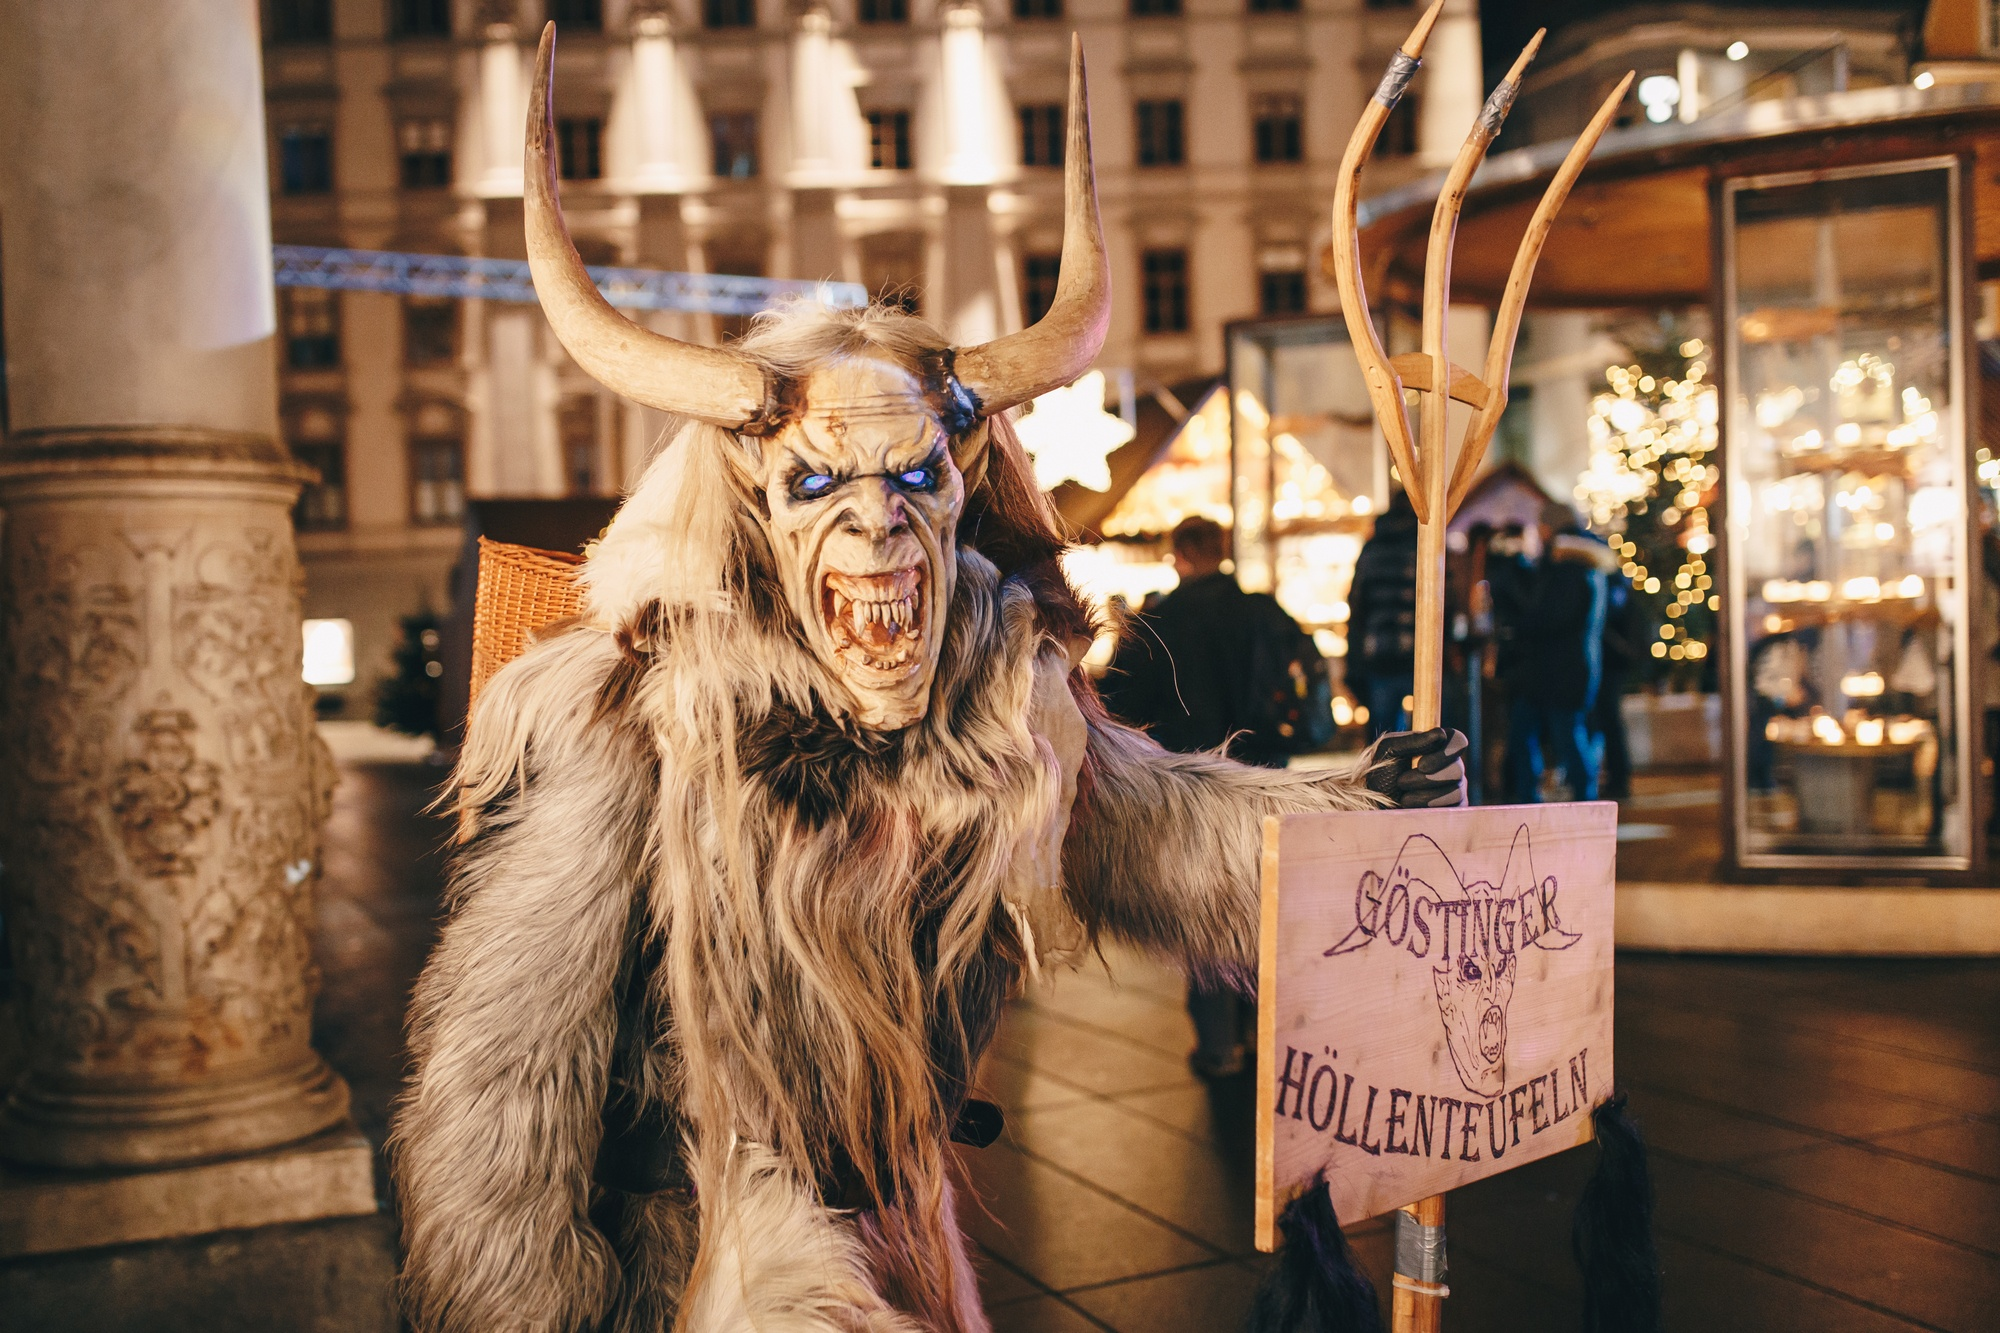 Krampus masked people in Graz, Austria at a Christmas festival